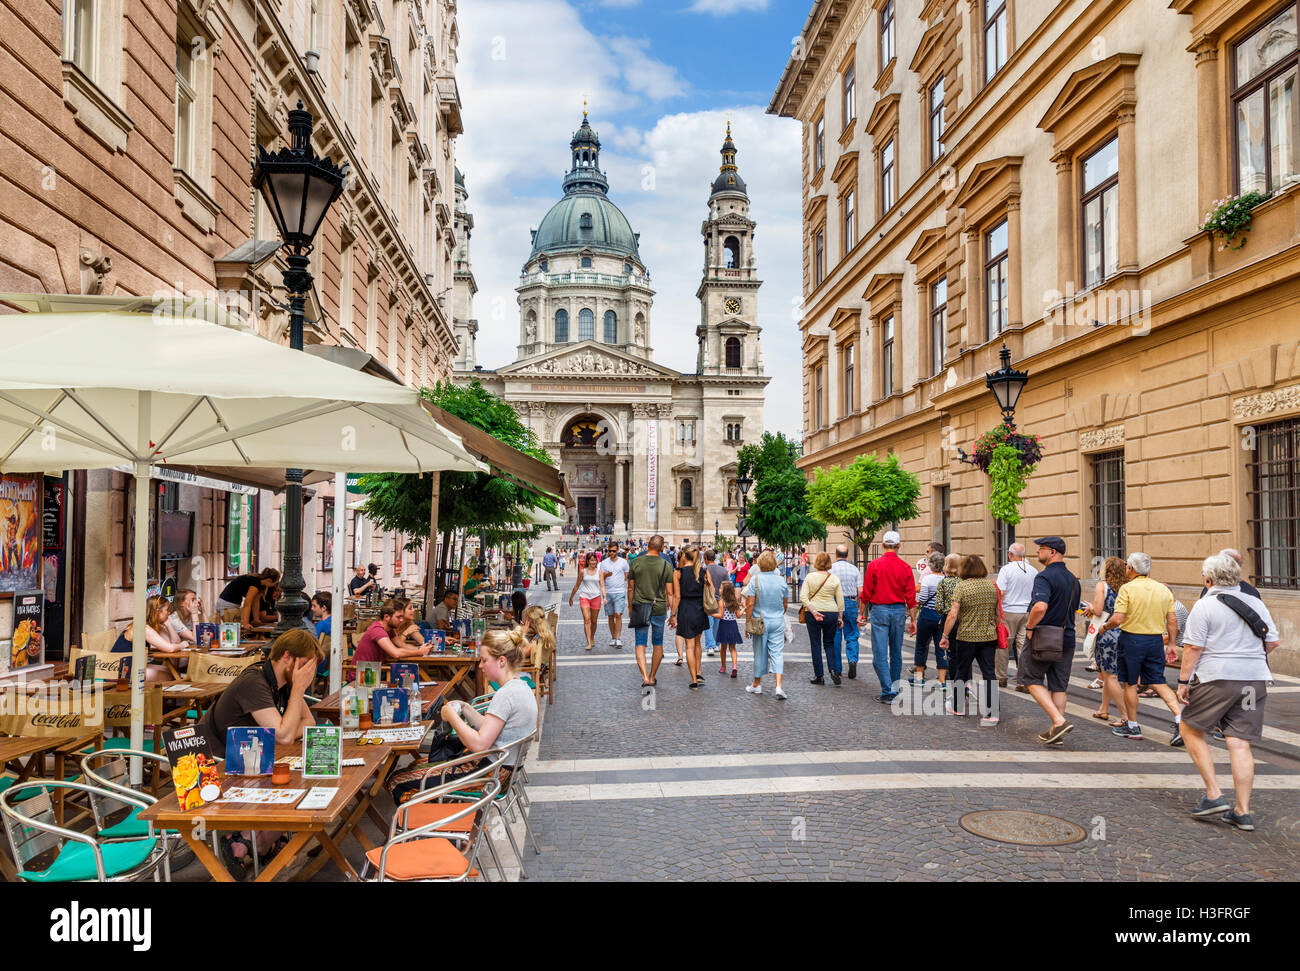 Cafe on Zrinyi Utca looking towards the Basilica of St Stephen, Lipótváros district, Budapest, Hungary - Stock Image